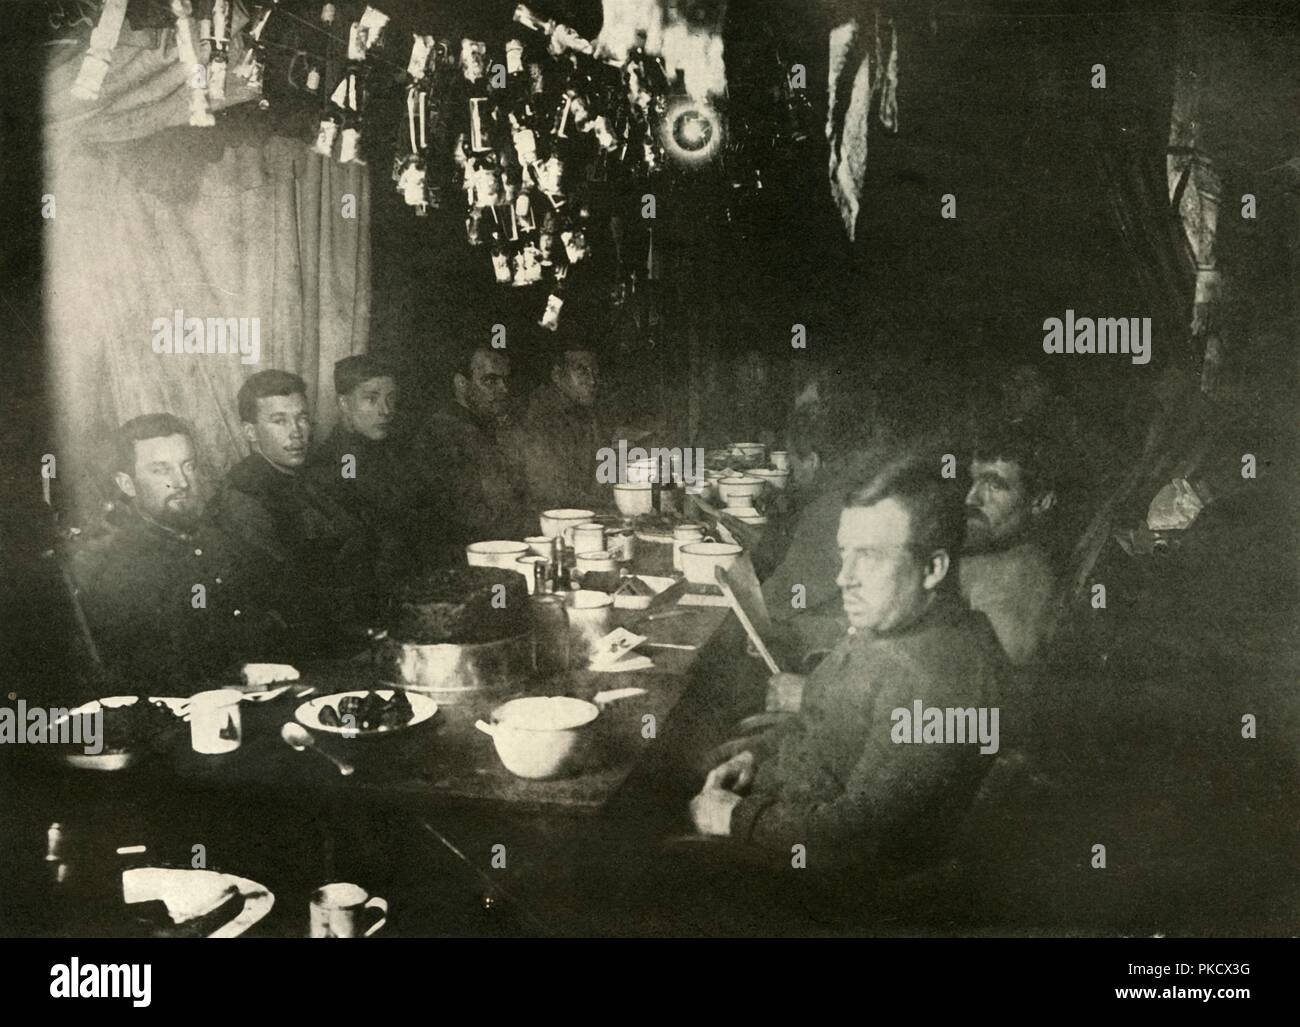 'The Midwinter's Day Feast', June 1908, (1909). The midwinter feast at the Nimrod Hut, Cape Royds. Ernest Shackleton is at the head of the table. On the left side are Armytage, Brocklehurst, Marston, Day, Adams and Marshall; on the right, Roberts, Mackay, Murray, Wild, Joyce, Mawson. Anglo-Irish explorer Ernest Shackleton (1874-1922) made three expeditions to the Antarctic. During the second expedition, 1907-1909, he and three companions established a new record, Farthest South latitude at 88°S, only 97 geographical miles (112 statute miles, or 180 km) from the South Pole, the largest adv - Stock Image